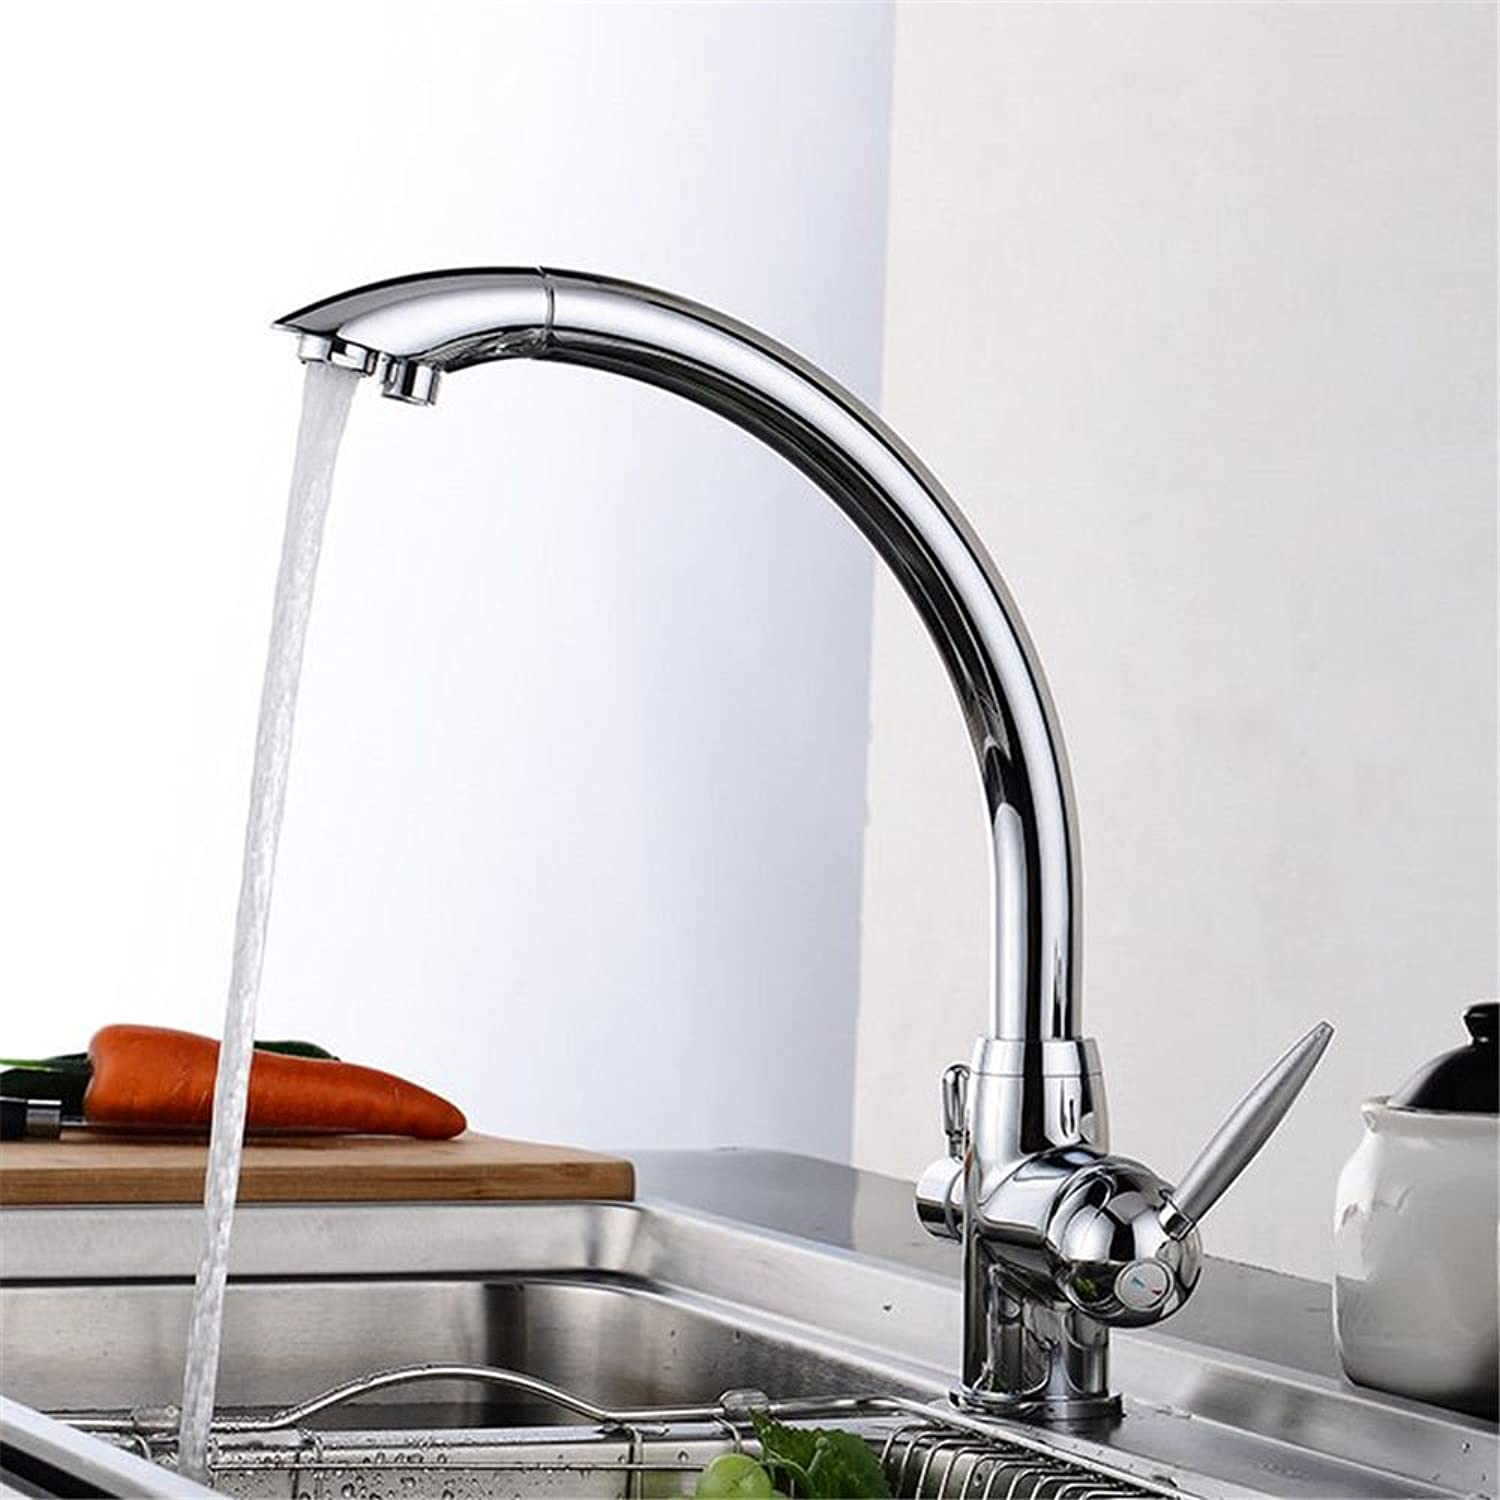 Commercial Lever Pull Down Kitchen Sink Faucet Brass Multifunctional 3 with Pure Water Kitchen Faucet Copper Chrome Hot and Cold Water Faucet Lead-Free Environmental Health Health Sink Basin Faucet